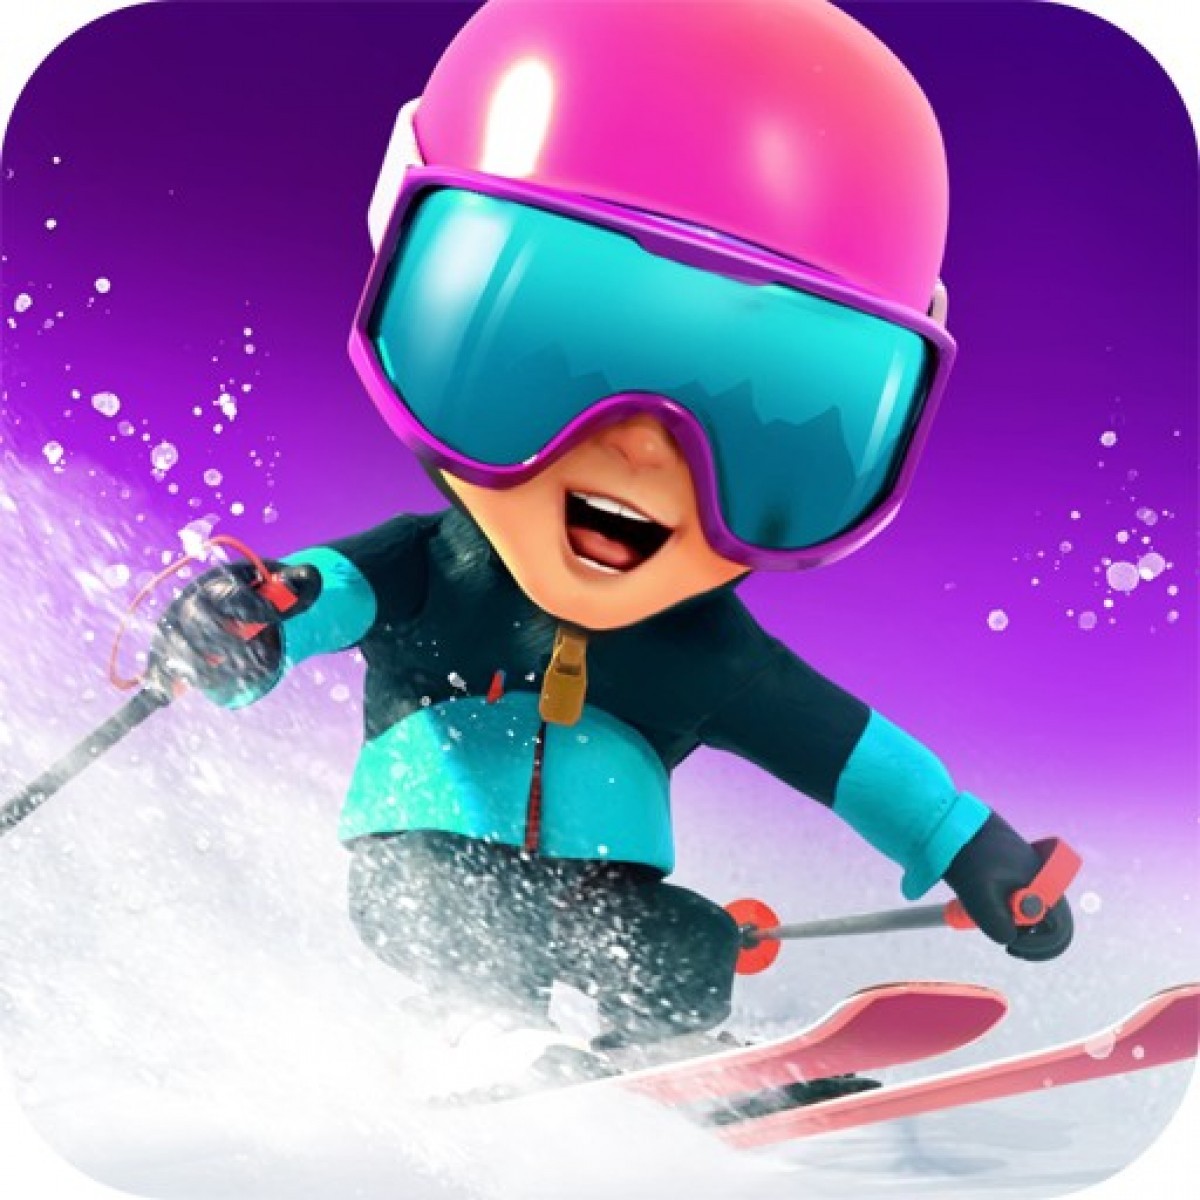 snow trial v1 0 8 mod apk money 1 - Snow Trial v1.0.8 MOD APK - Money Cheat